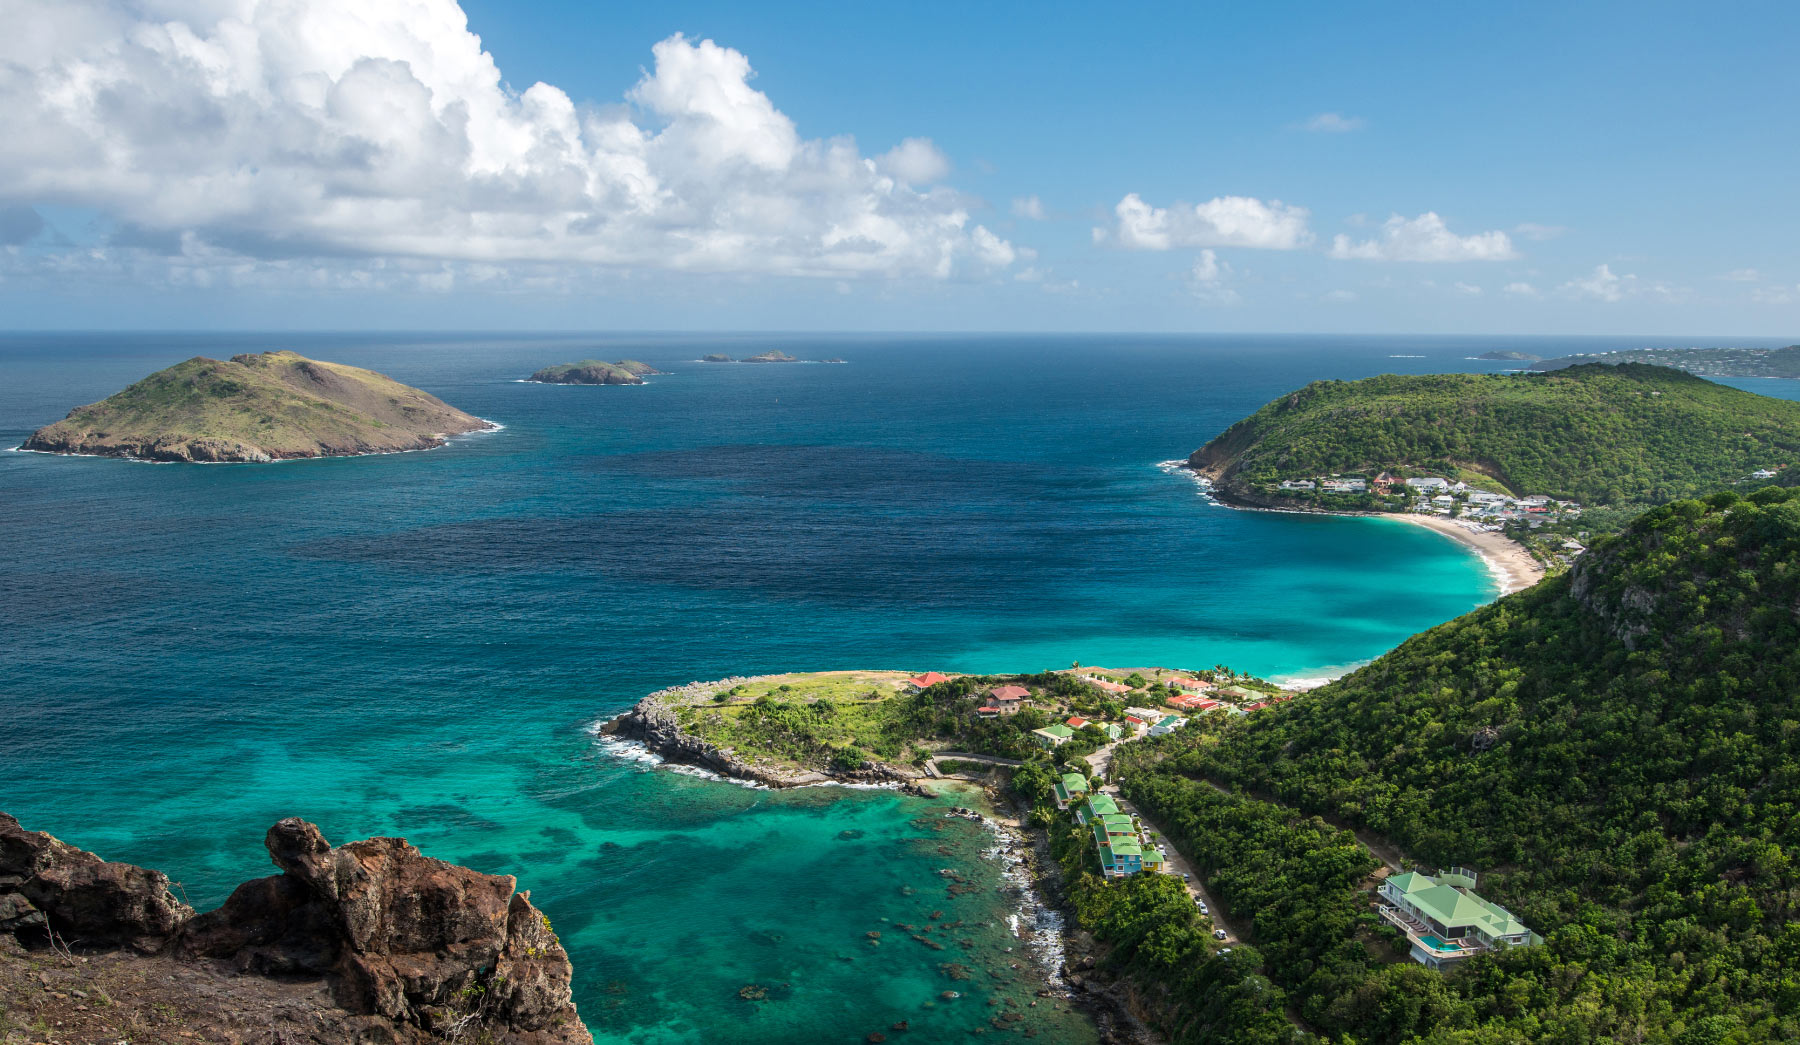 Hilltop View Of Villas, Ocean, and Islands In St Barts